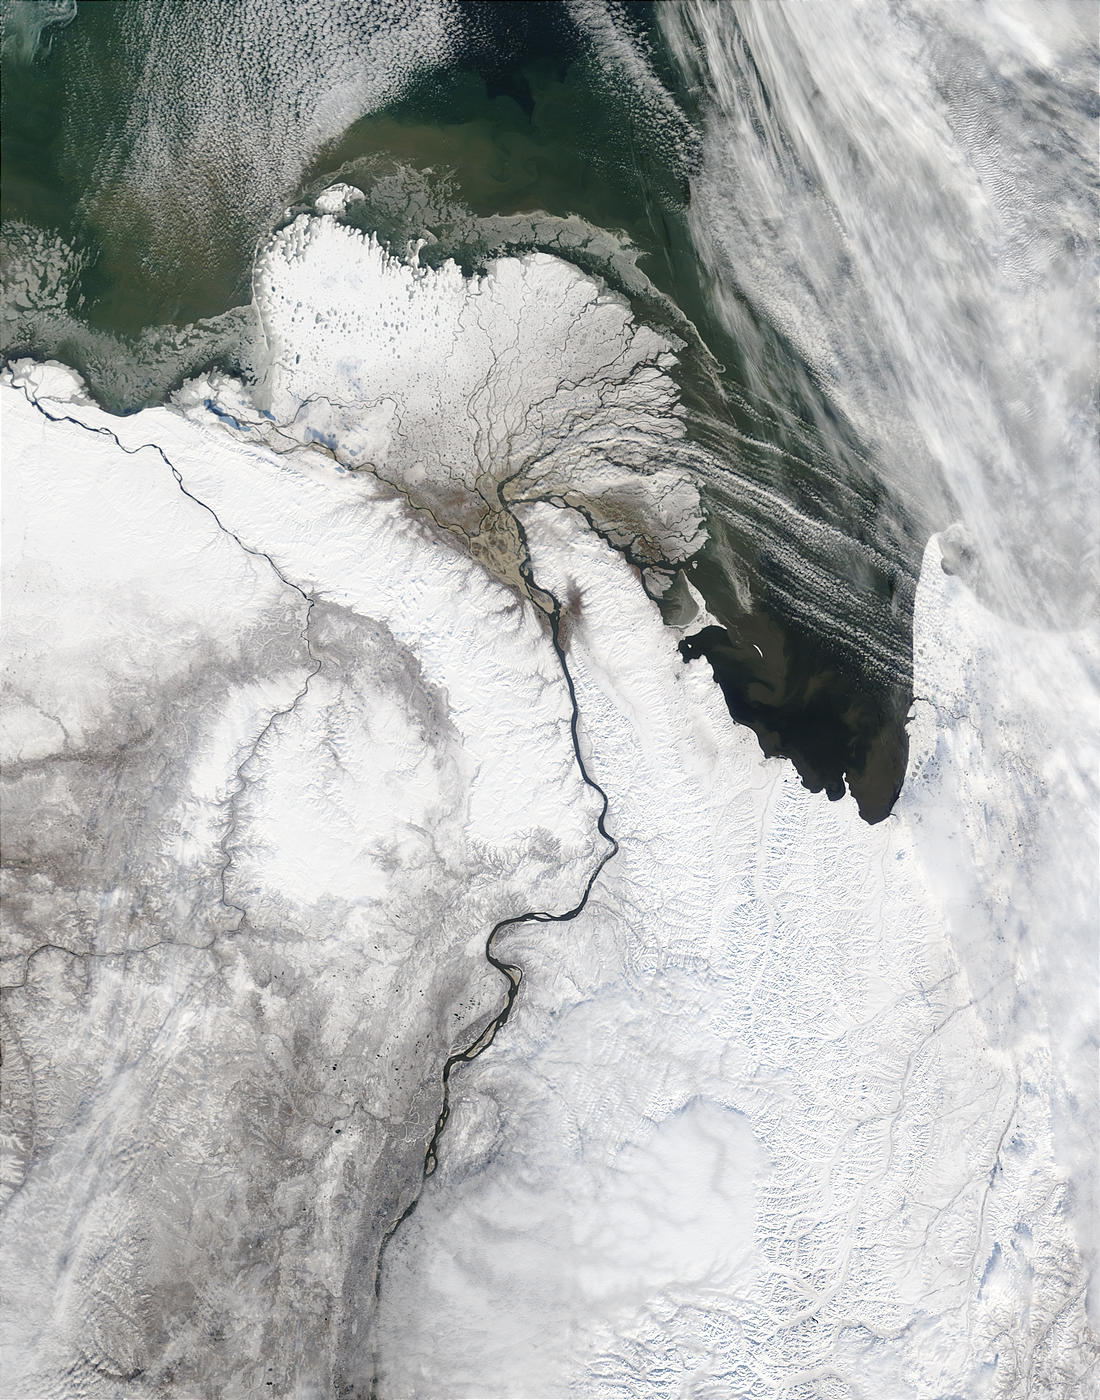 Lena River Delta, Russia - related image preview